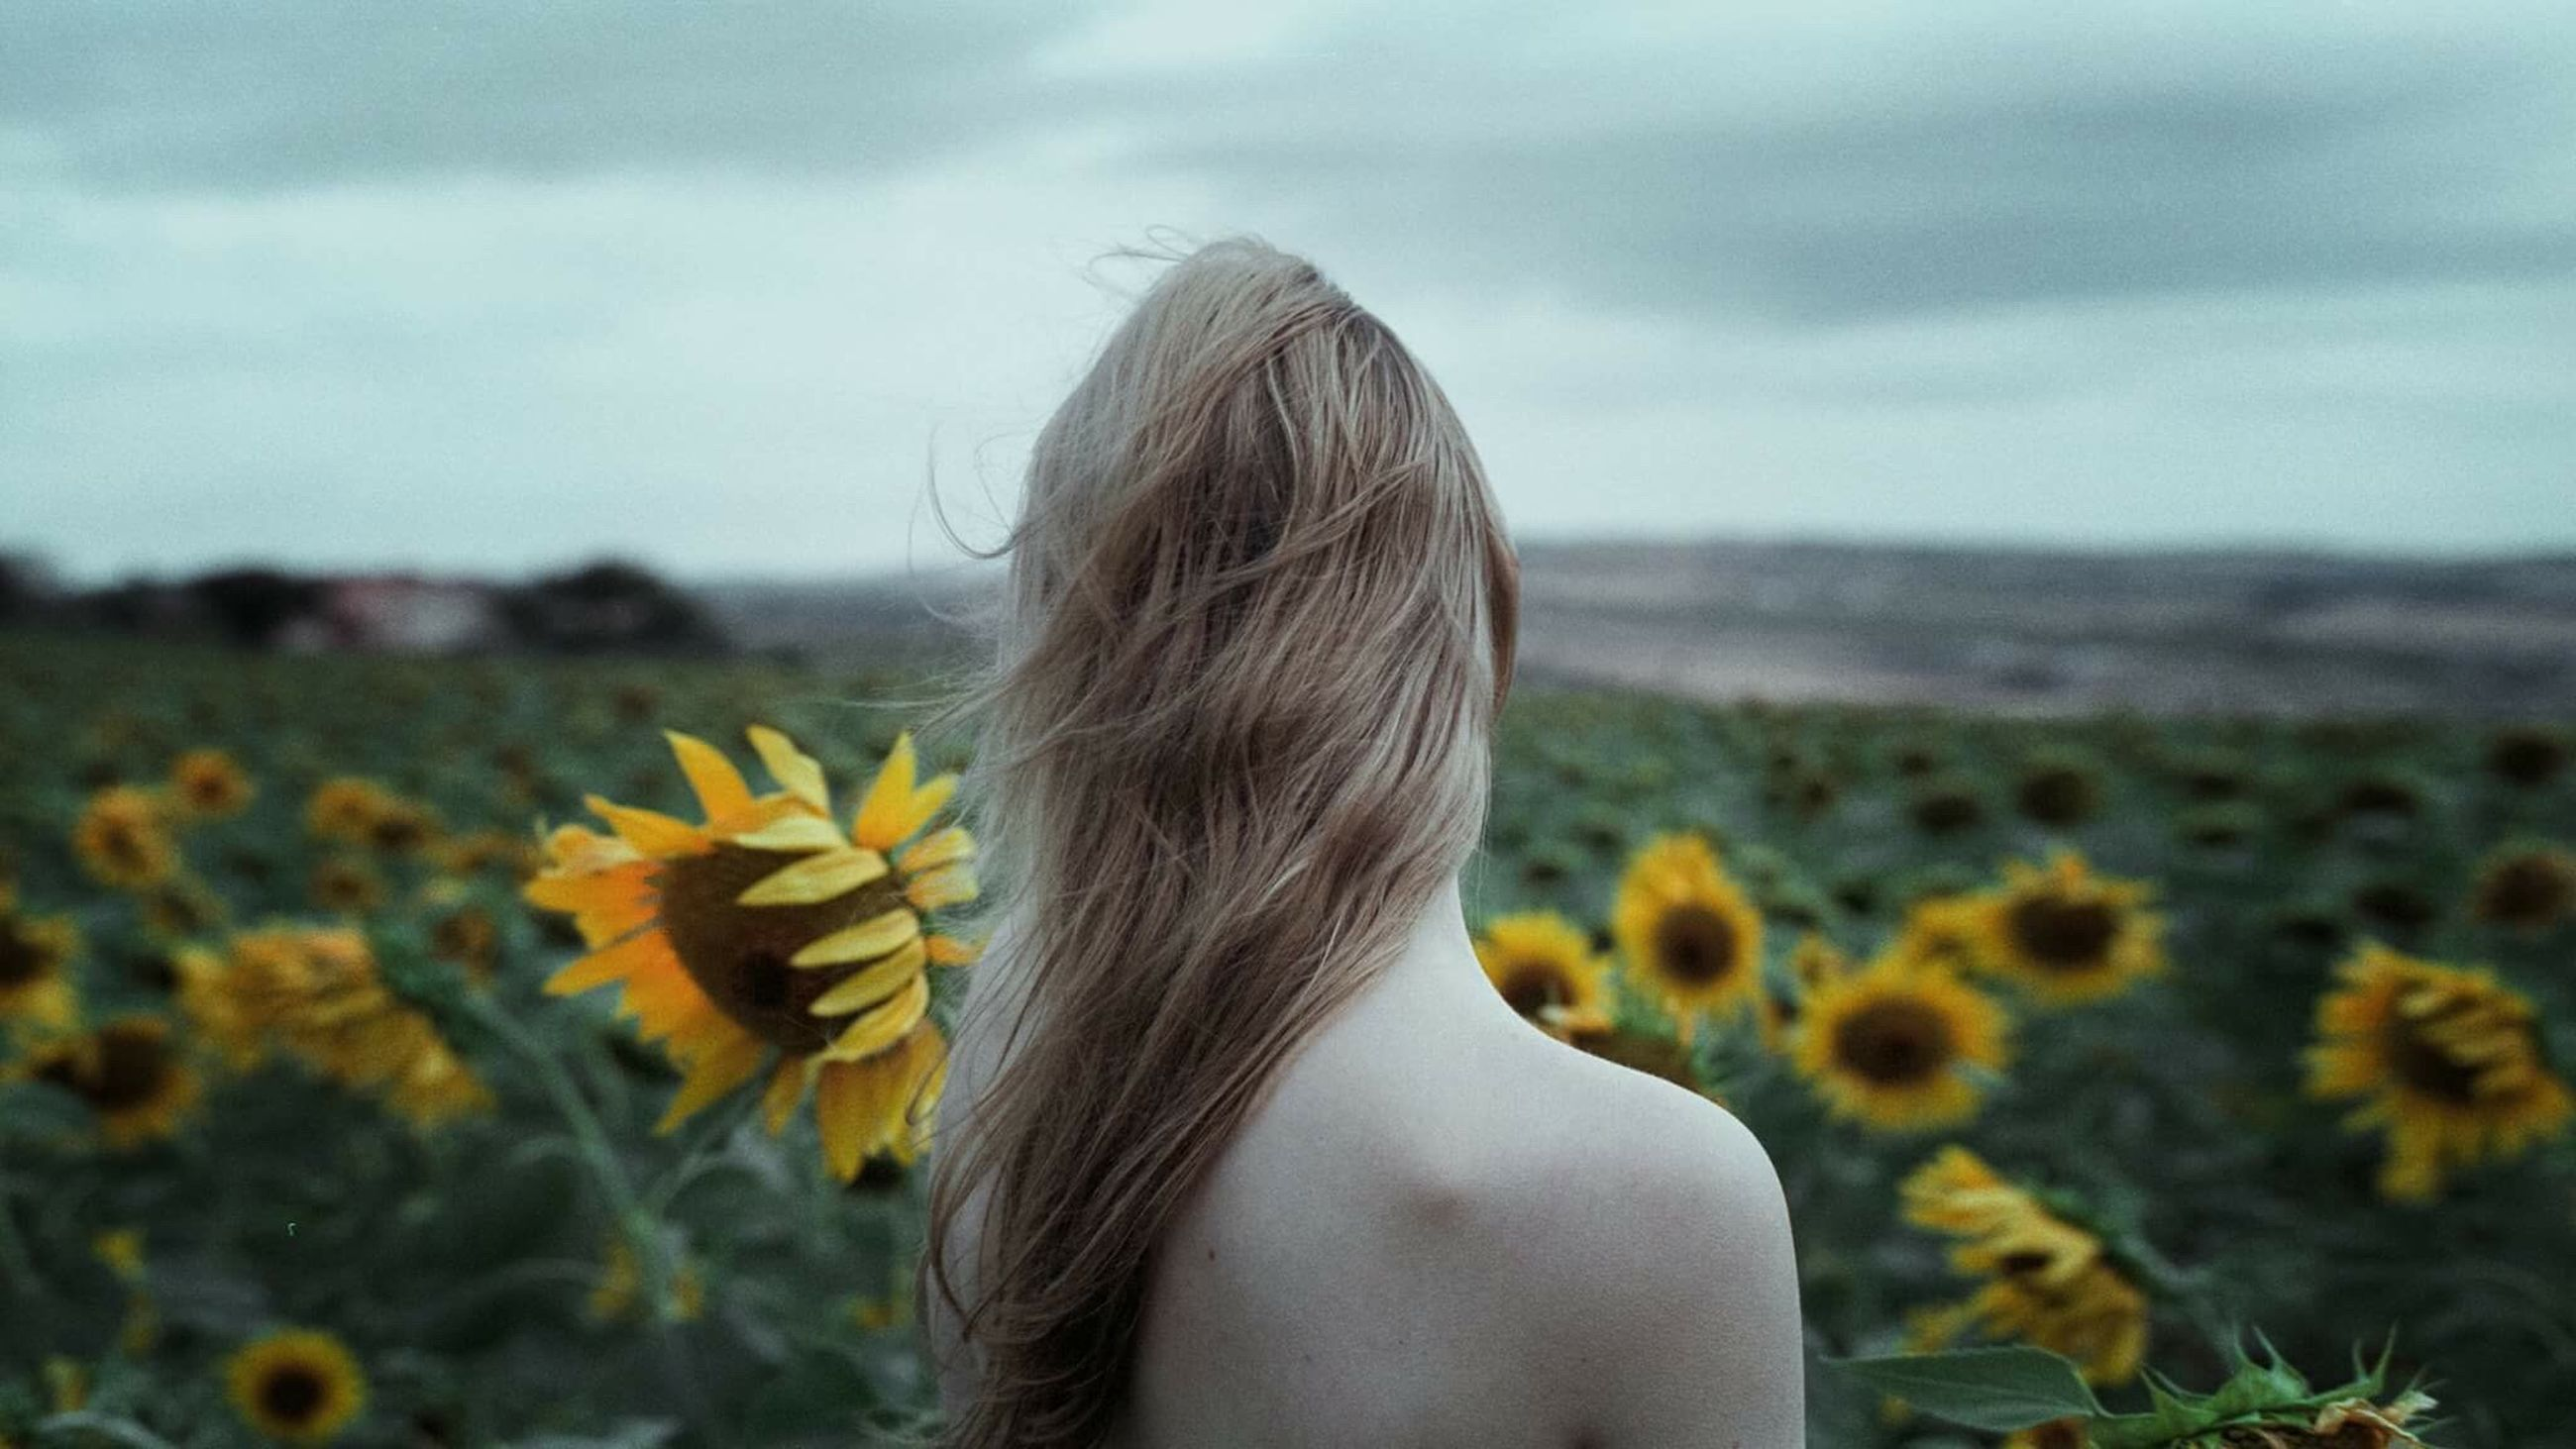 flower, yellow, person, focus on foreground, rear view, waist up, leisure activity, beauty in nature, sunflower, sky, long hair, tranquility, field, growth, nature, freshness, casual clothing, tranquil scene, scenics, mountain, cloud - sky, day, vibrant color, fragility